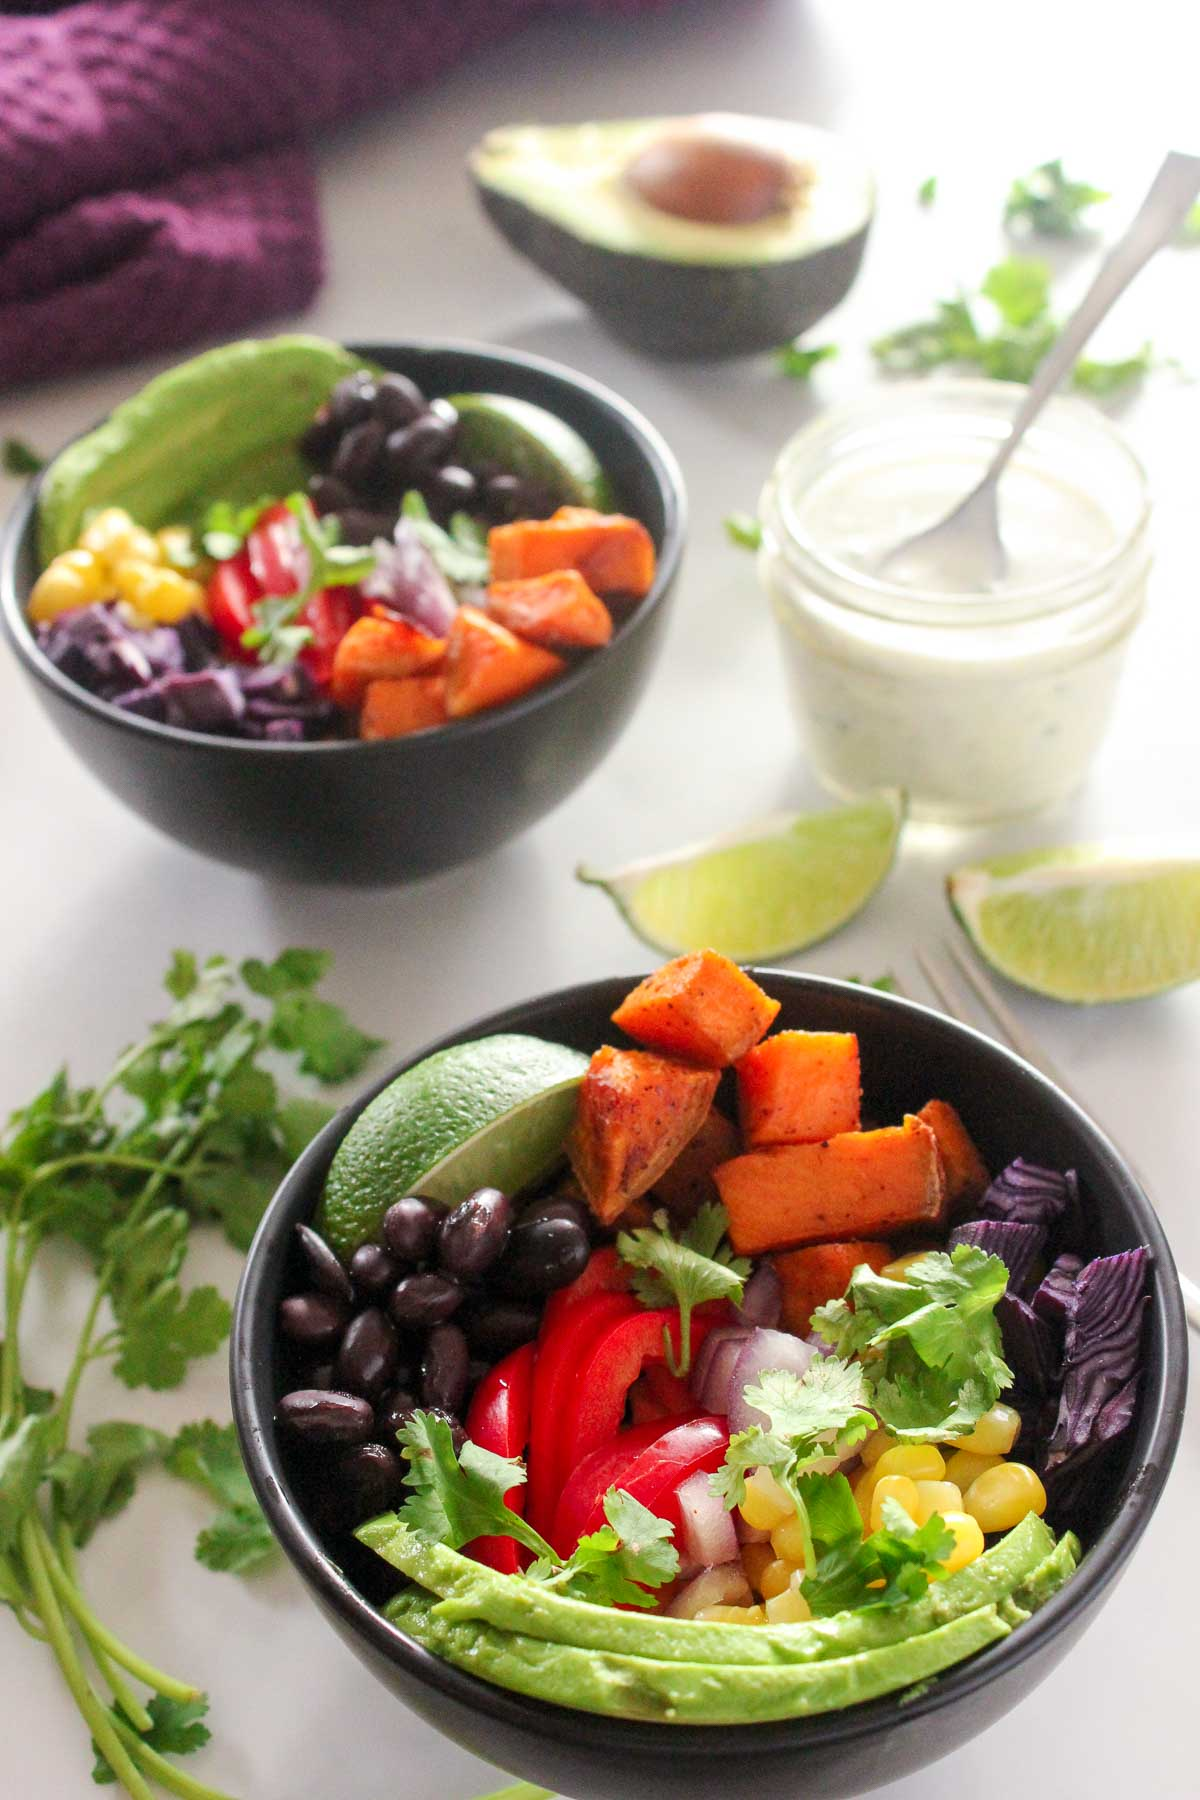 Black bowls with avocado, black beans, corn, red pepper, cilantro and sweet potatoes